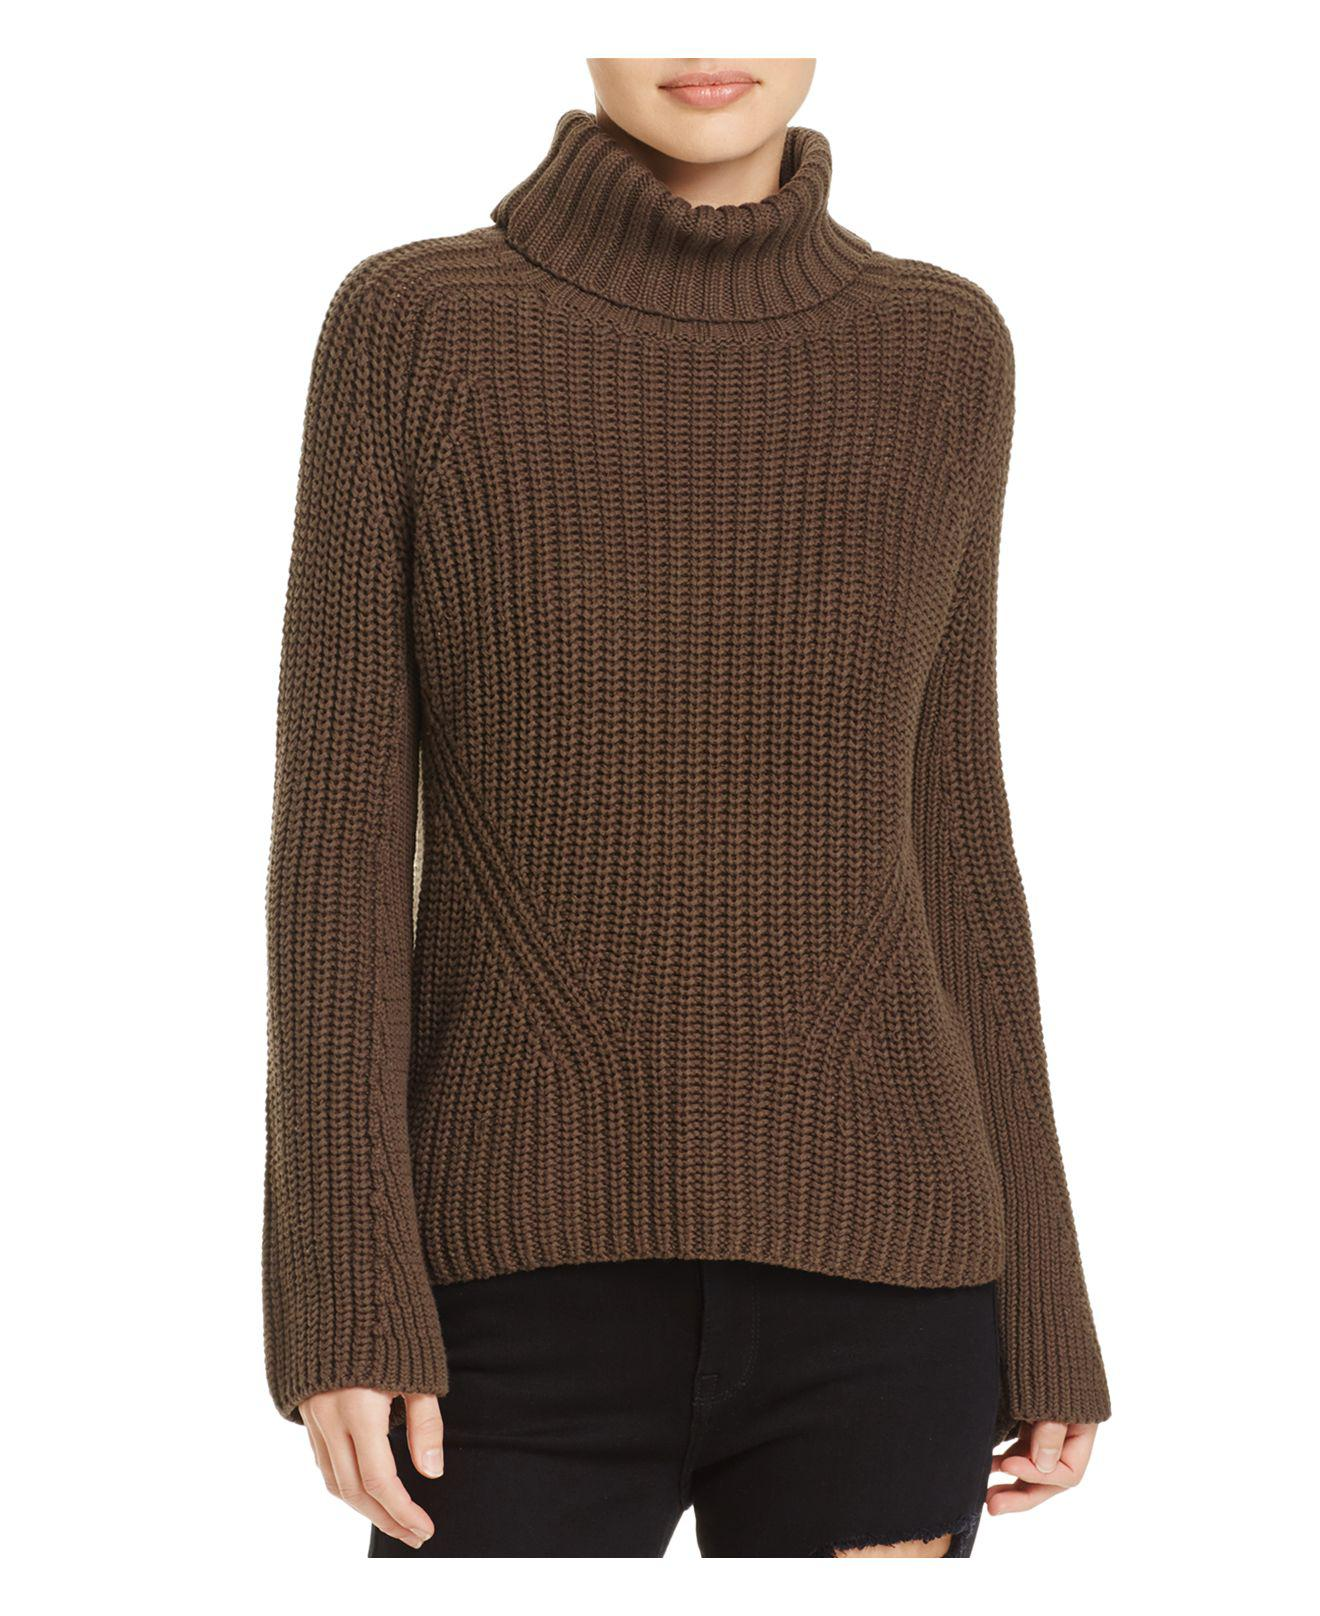 525 america Shaker Chunky-knit Turtleneck Sweater in Brown | Lyst